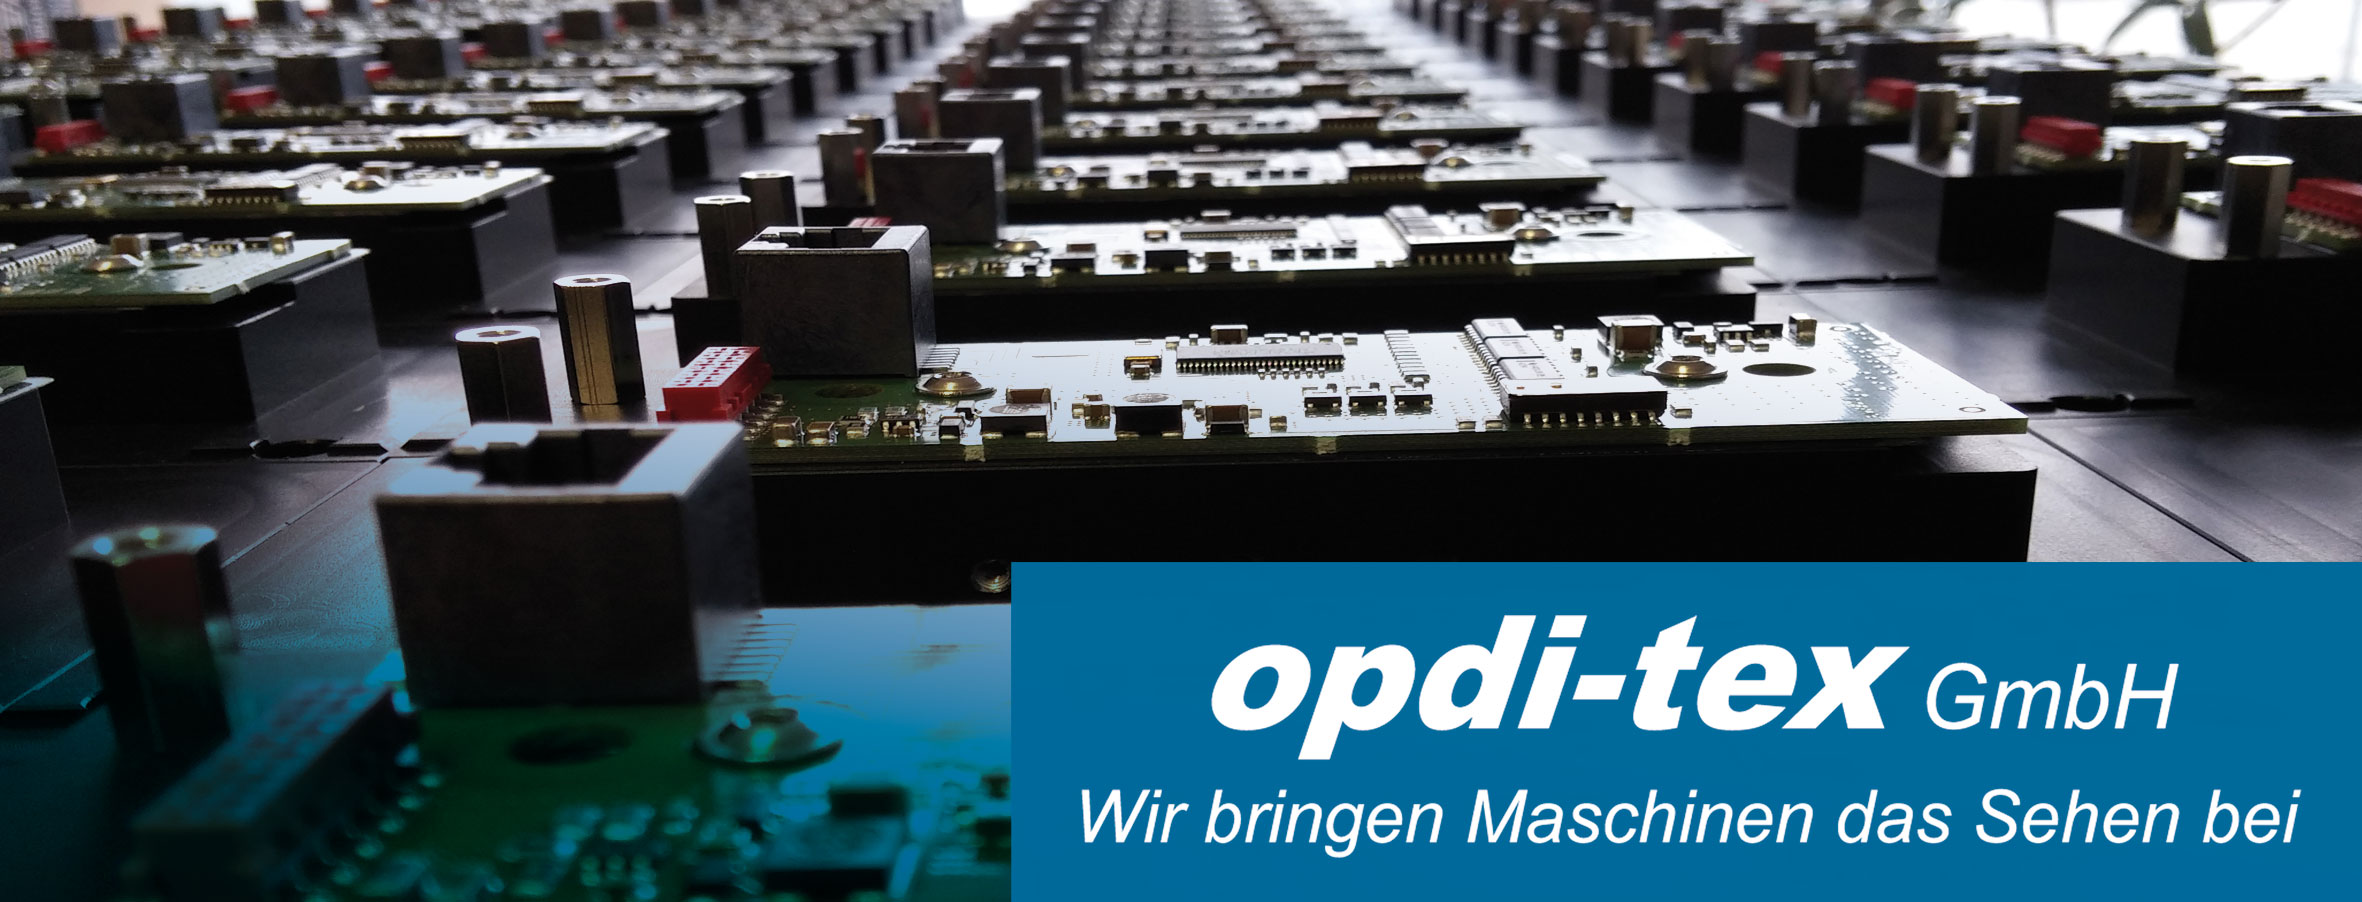 opdi-tex embedded systems linux